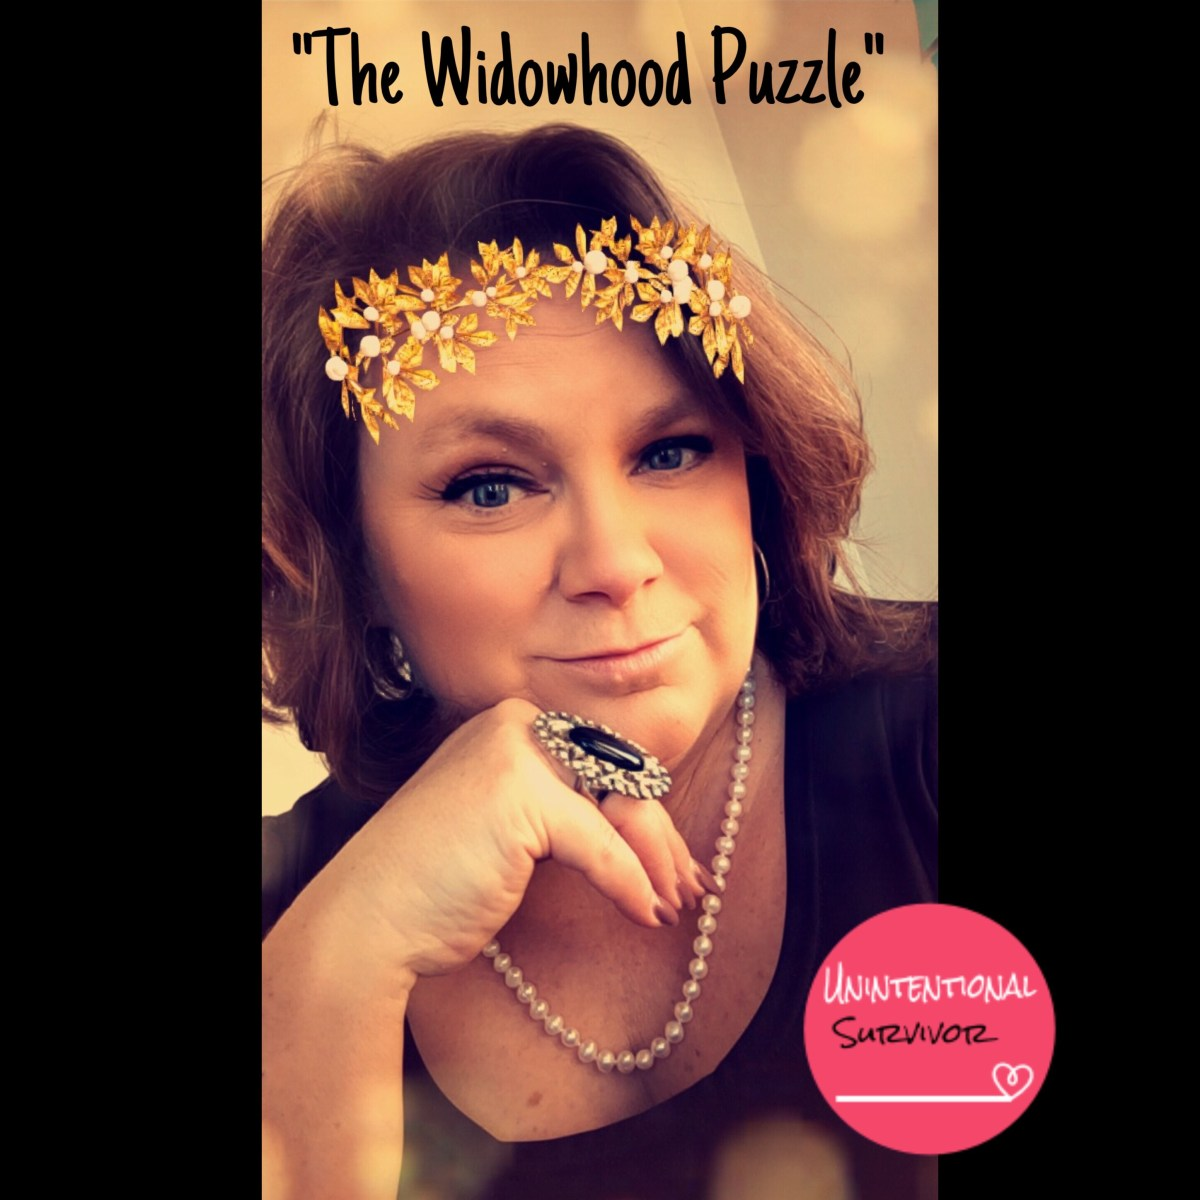 The Widowhood Puzzle